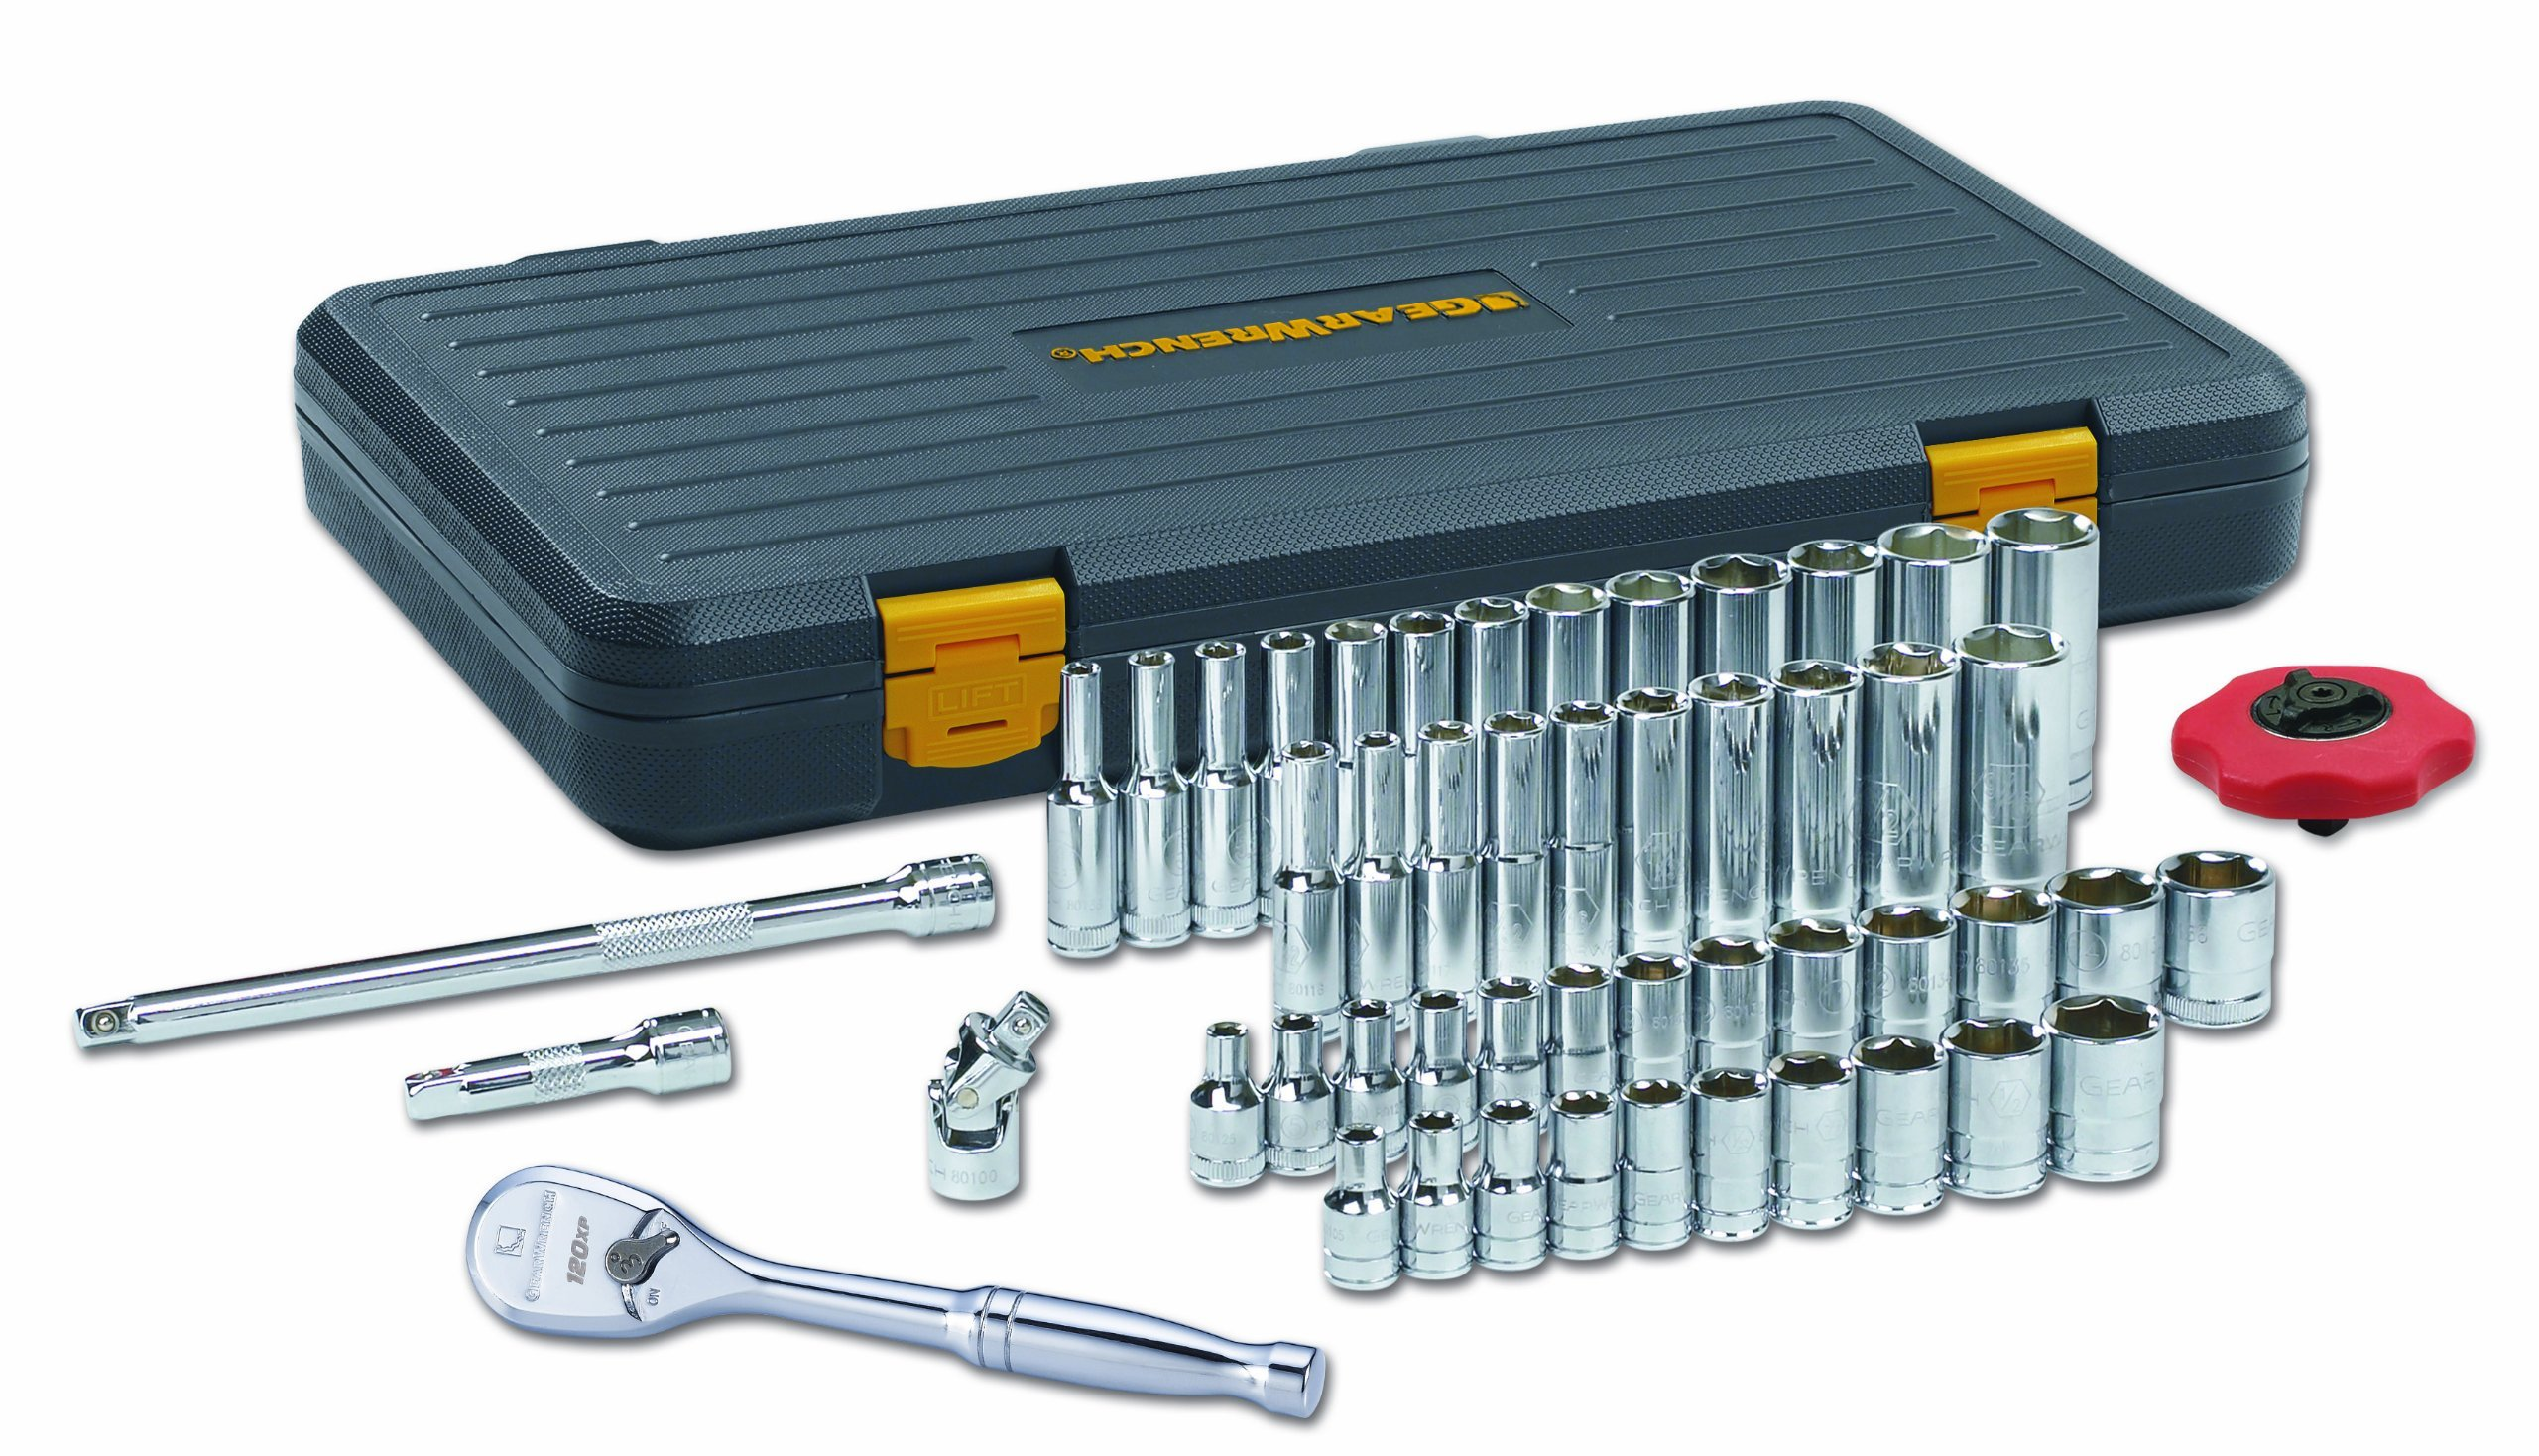 GearWrench 80300P 1/4-Inch Drive SAE/Metric 6 Point Standard and Deep Socket Set, 51-Piece